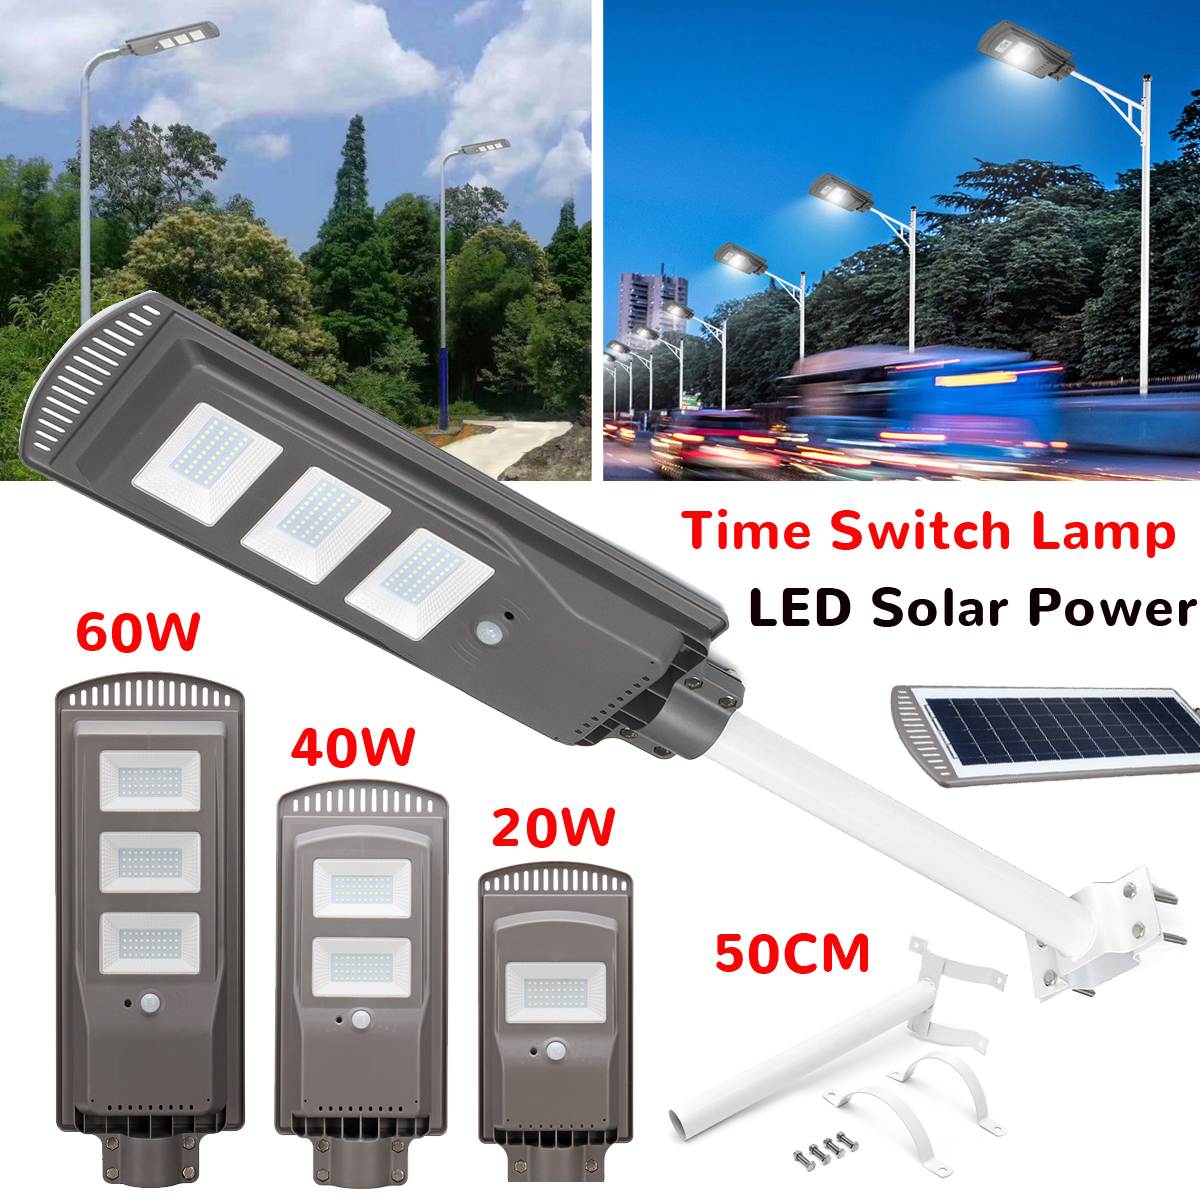 цена на 20/40/60W Solar Powered Panel LED Solar Street Light All-in-1 Time Switch Waterproof IP67 Wall Lighting Lamp for Outdoor Garden